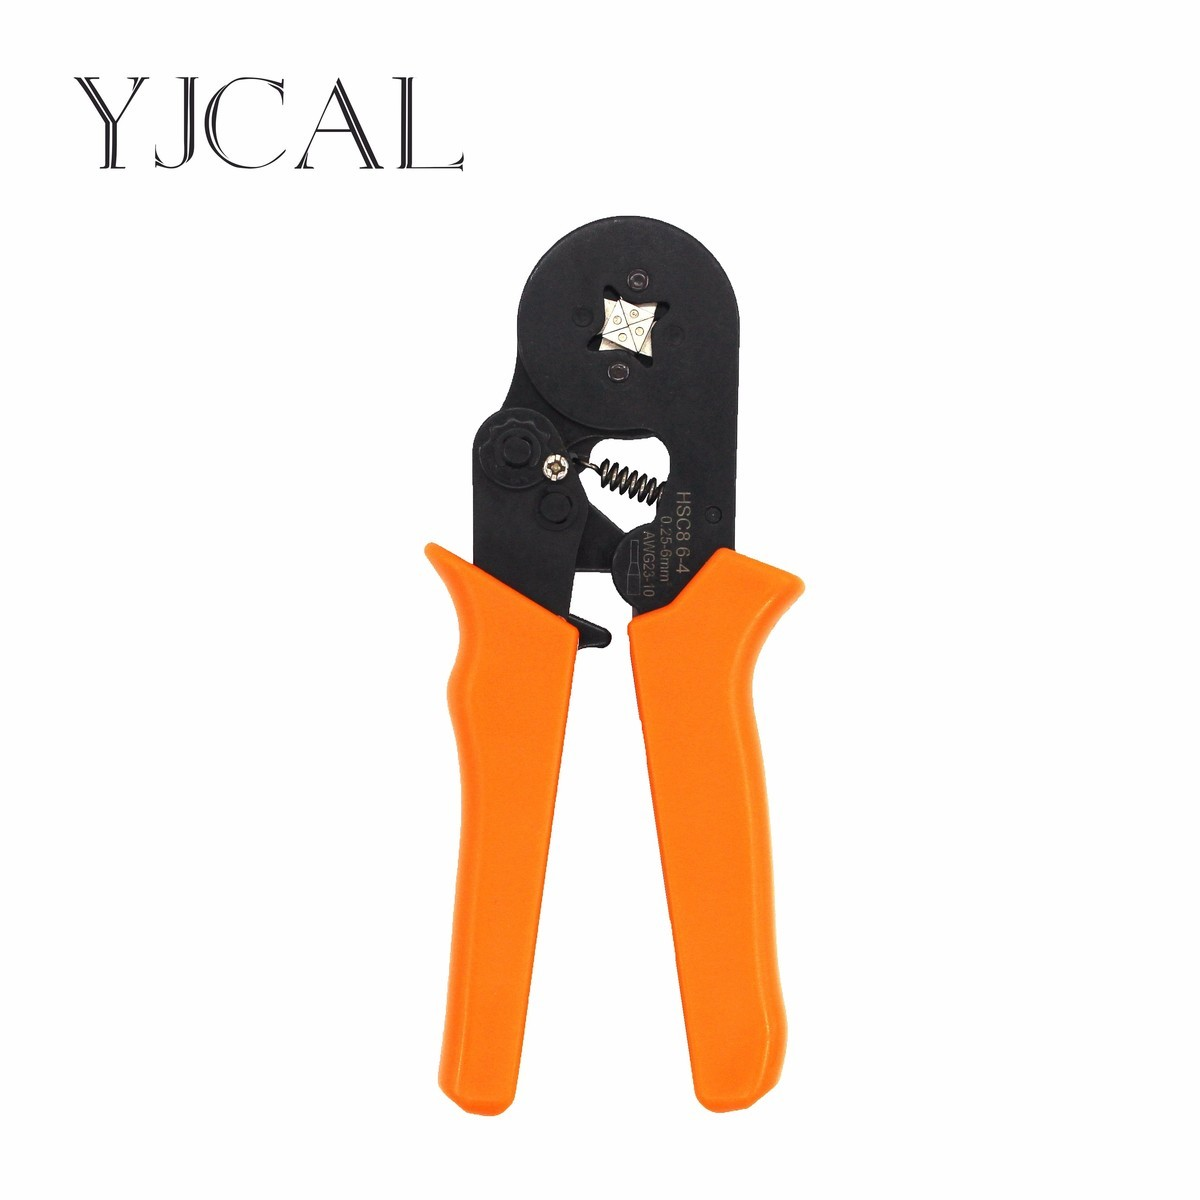 Portable Self-adjusting Crimping Press Plier HSC8 6-4 Wire Ferrule Crimp Tool Cable End Ferrules Terminal Tube Multi Hand Tool